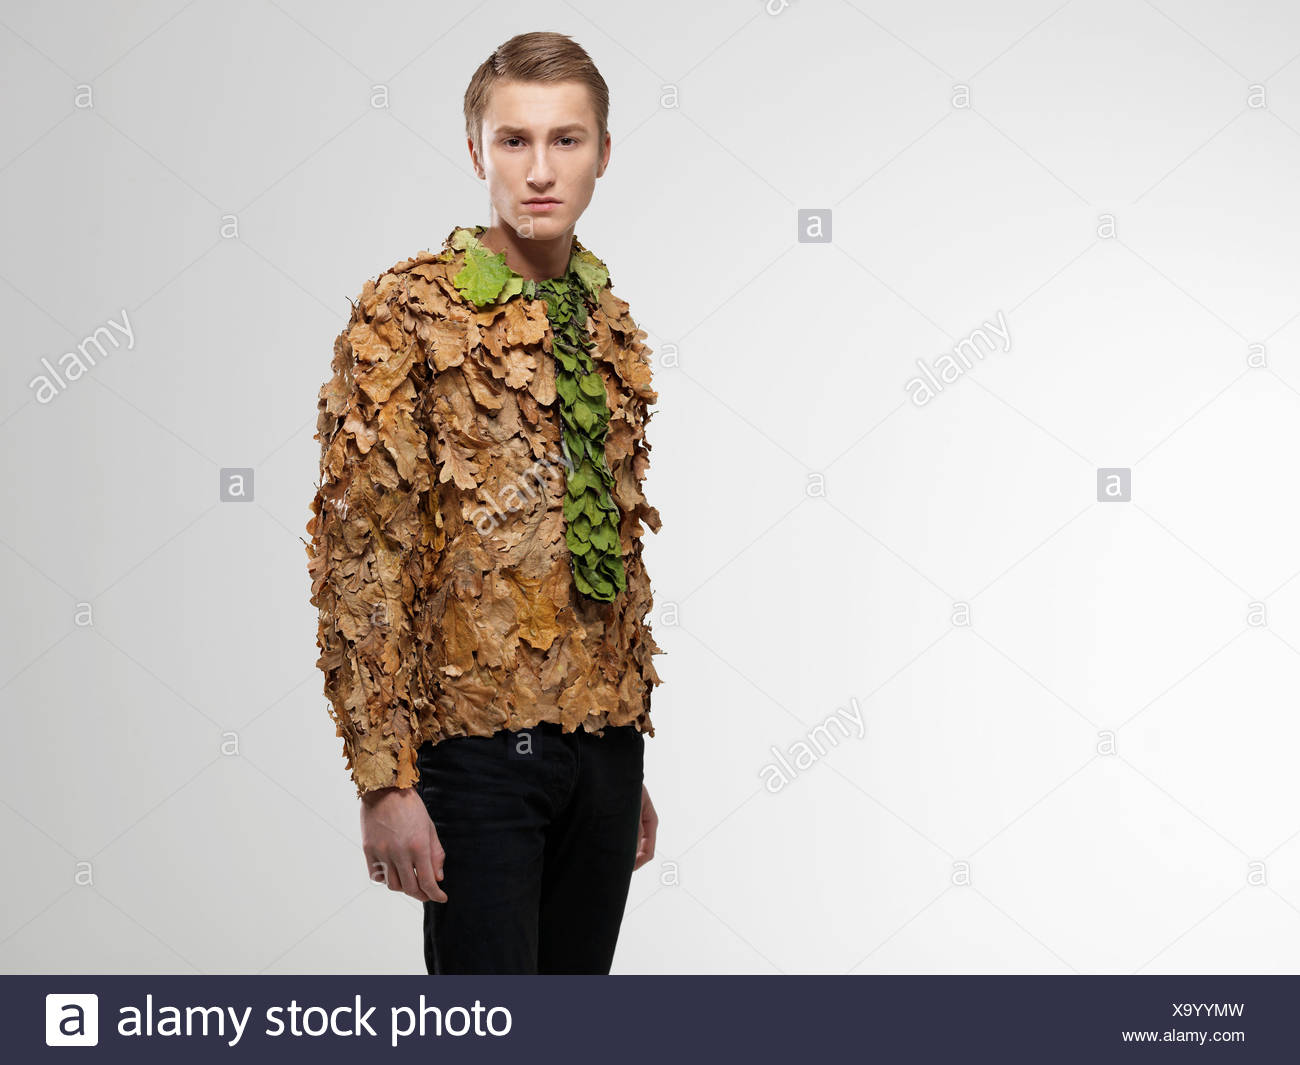 Man wearing shirt and tie made from leaves - Stock Image